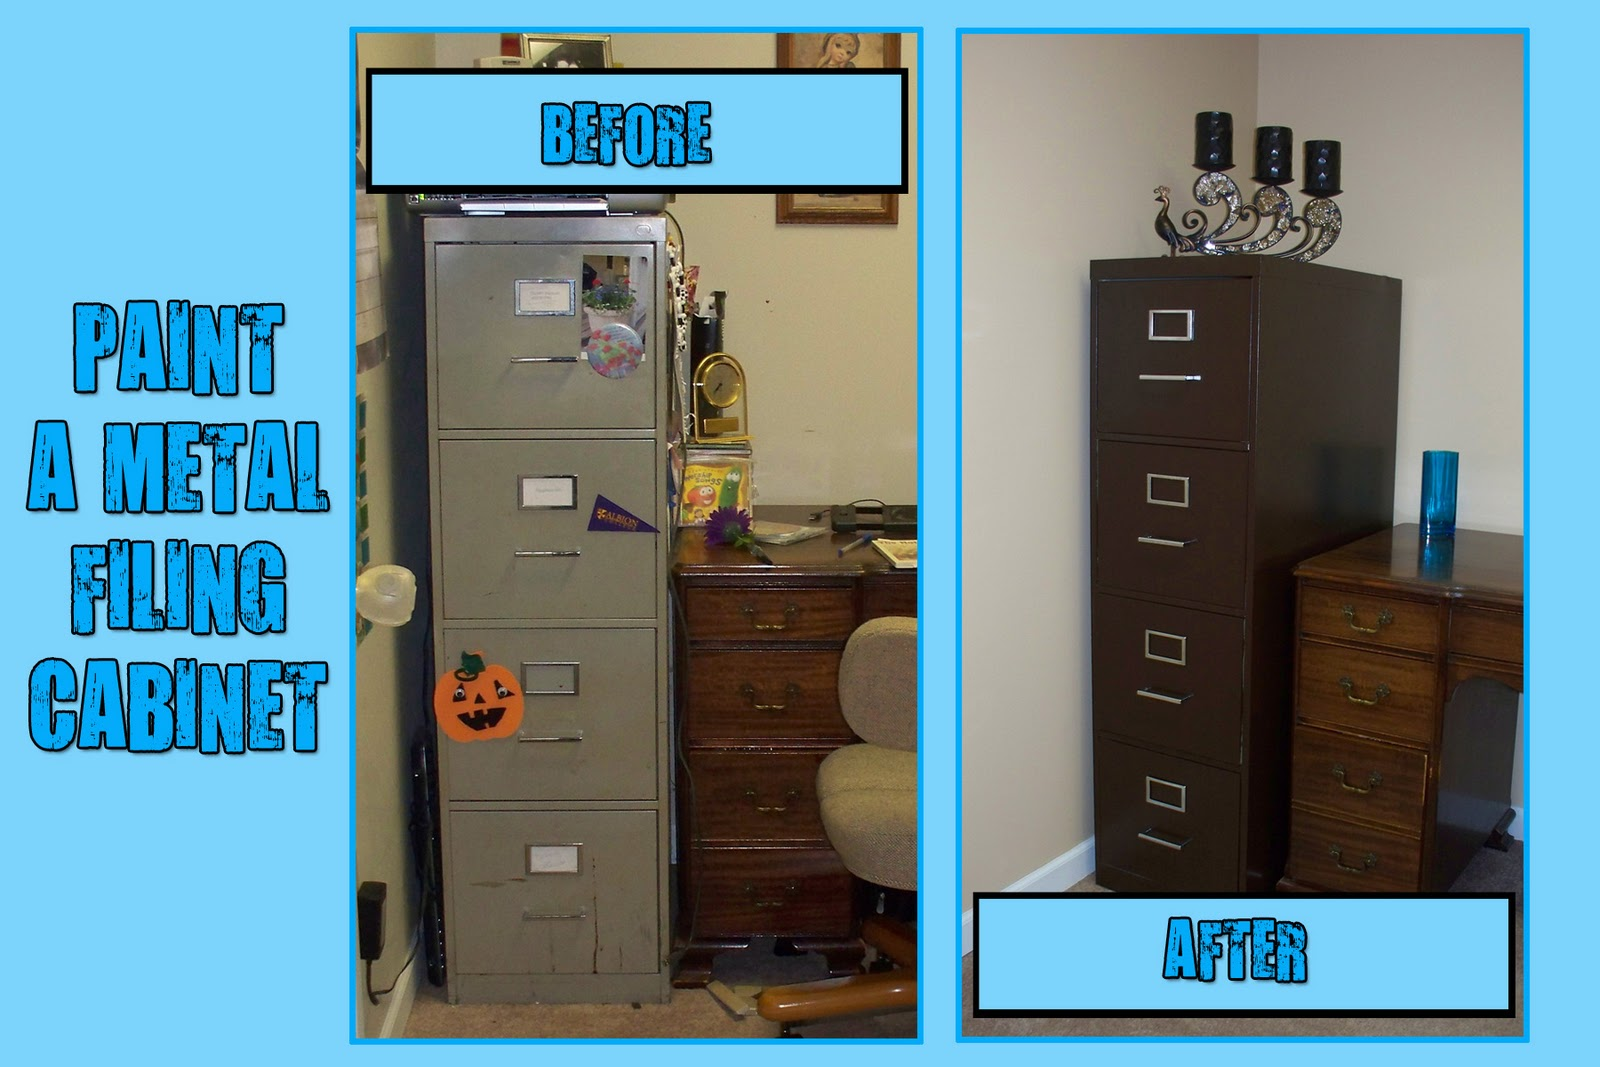 Make Do: I painted a metal filing cabinet and you can too!